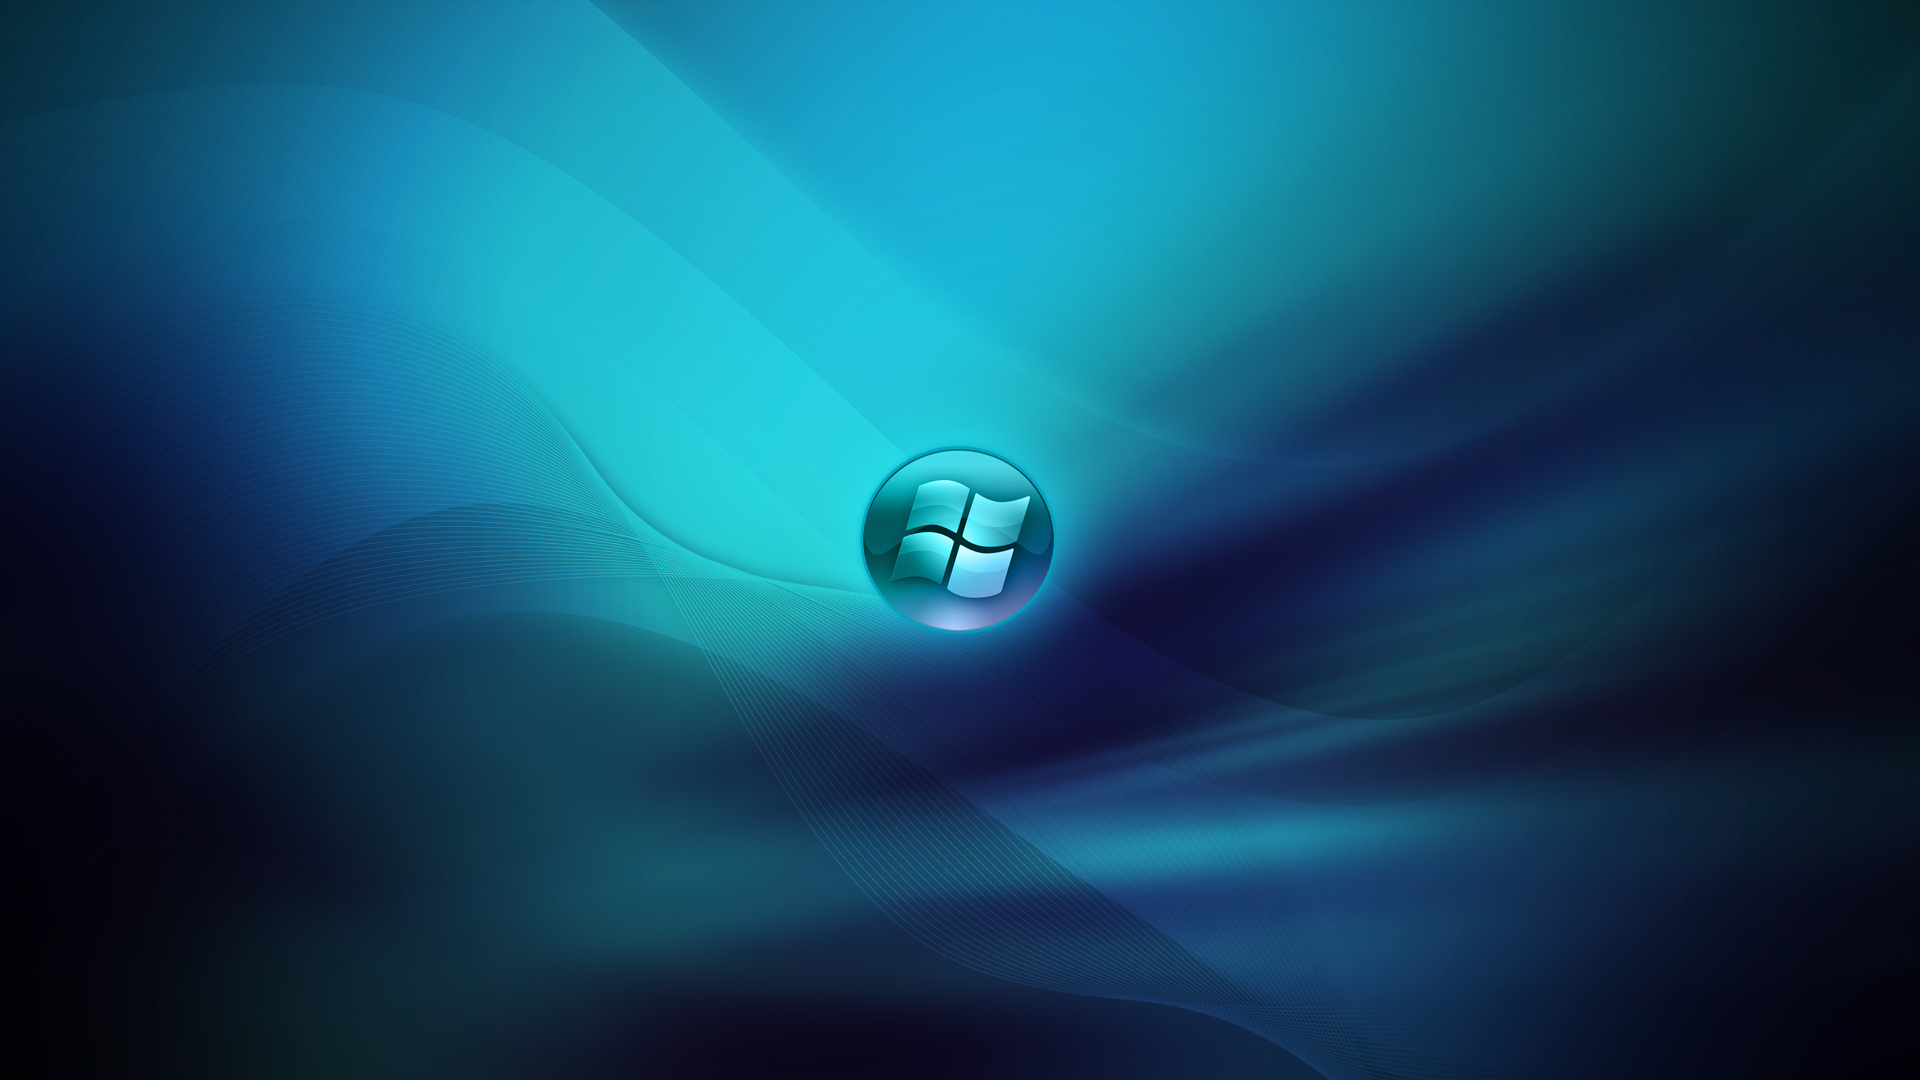 windows 7 wallpaper hd 1920x1080 - wallpapersafari